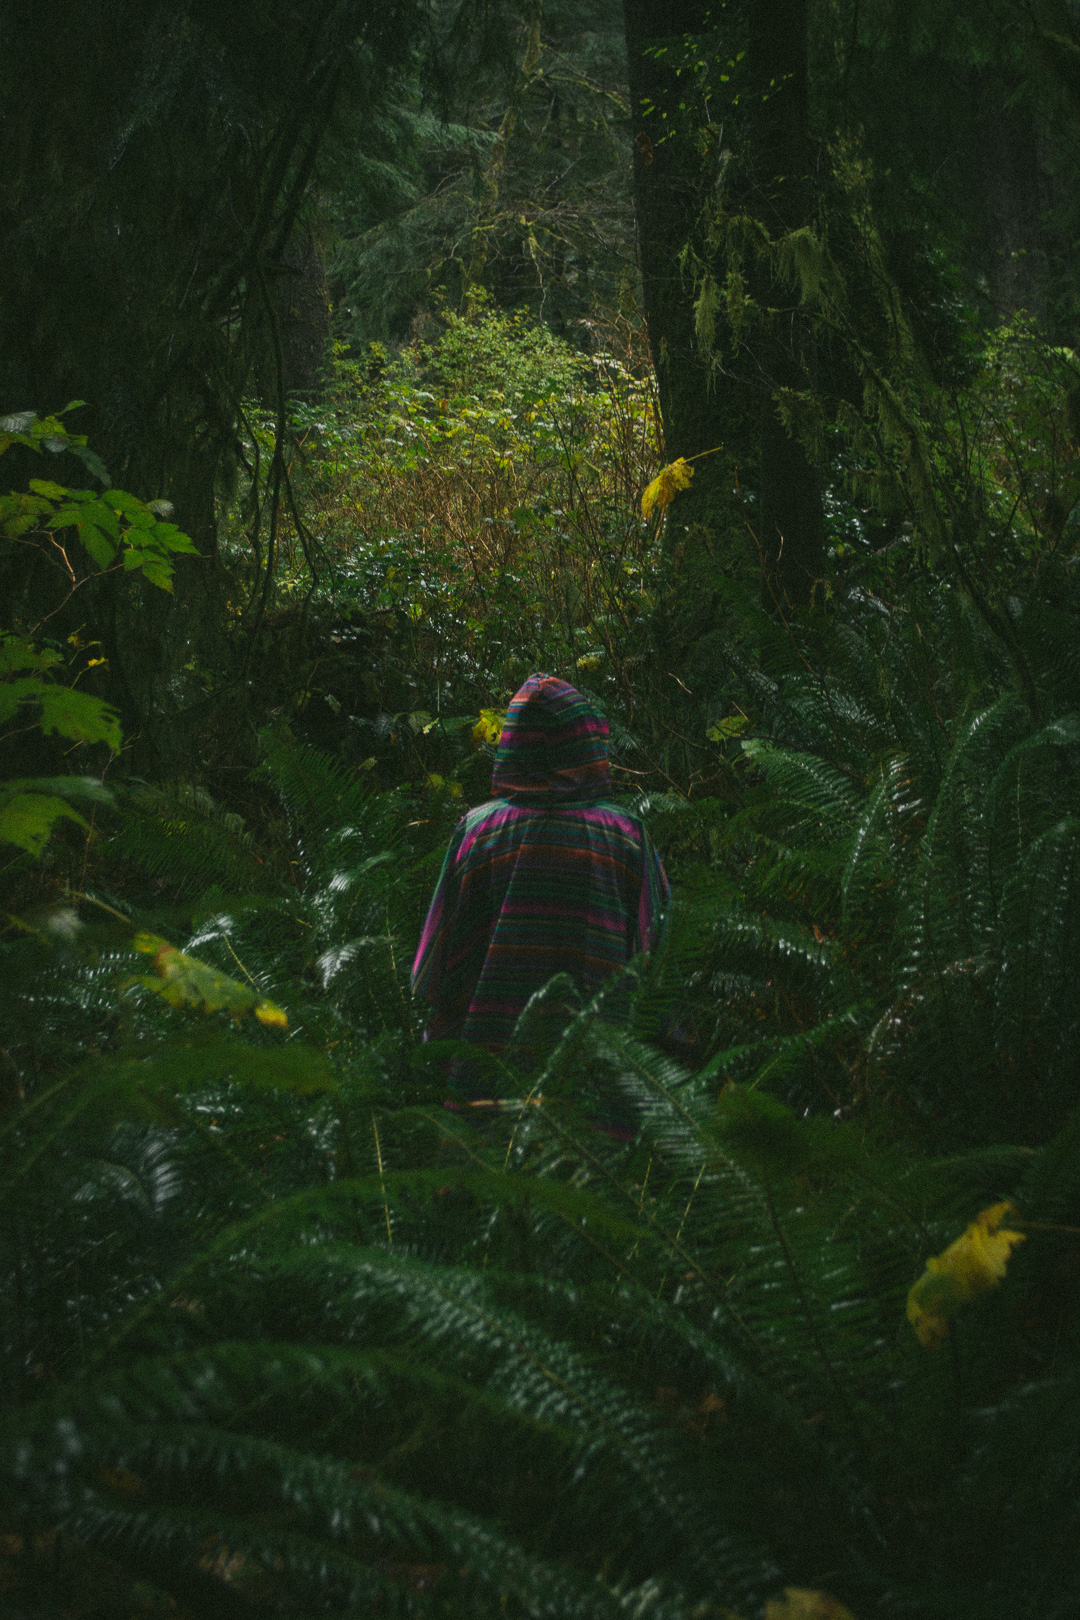 Silhouette in the middle of the Oregon coast fern forest by Octave Zangs for Conscious by Chloé